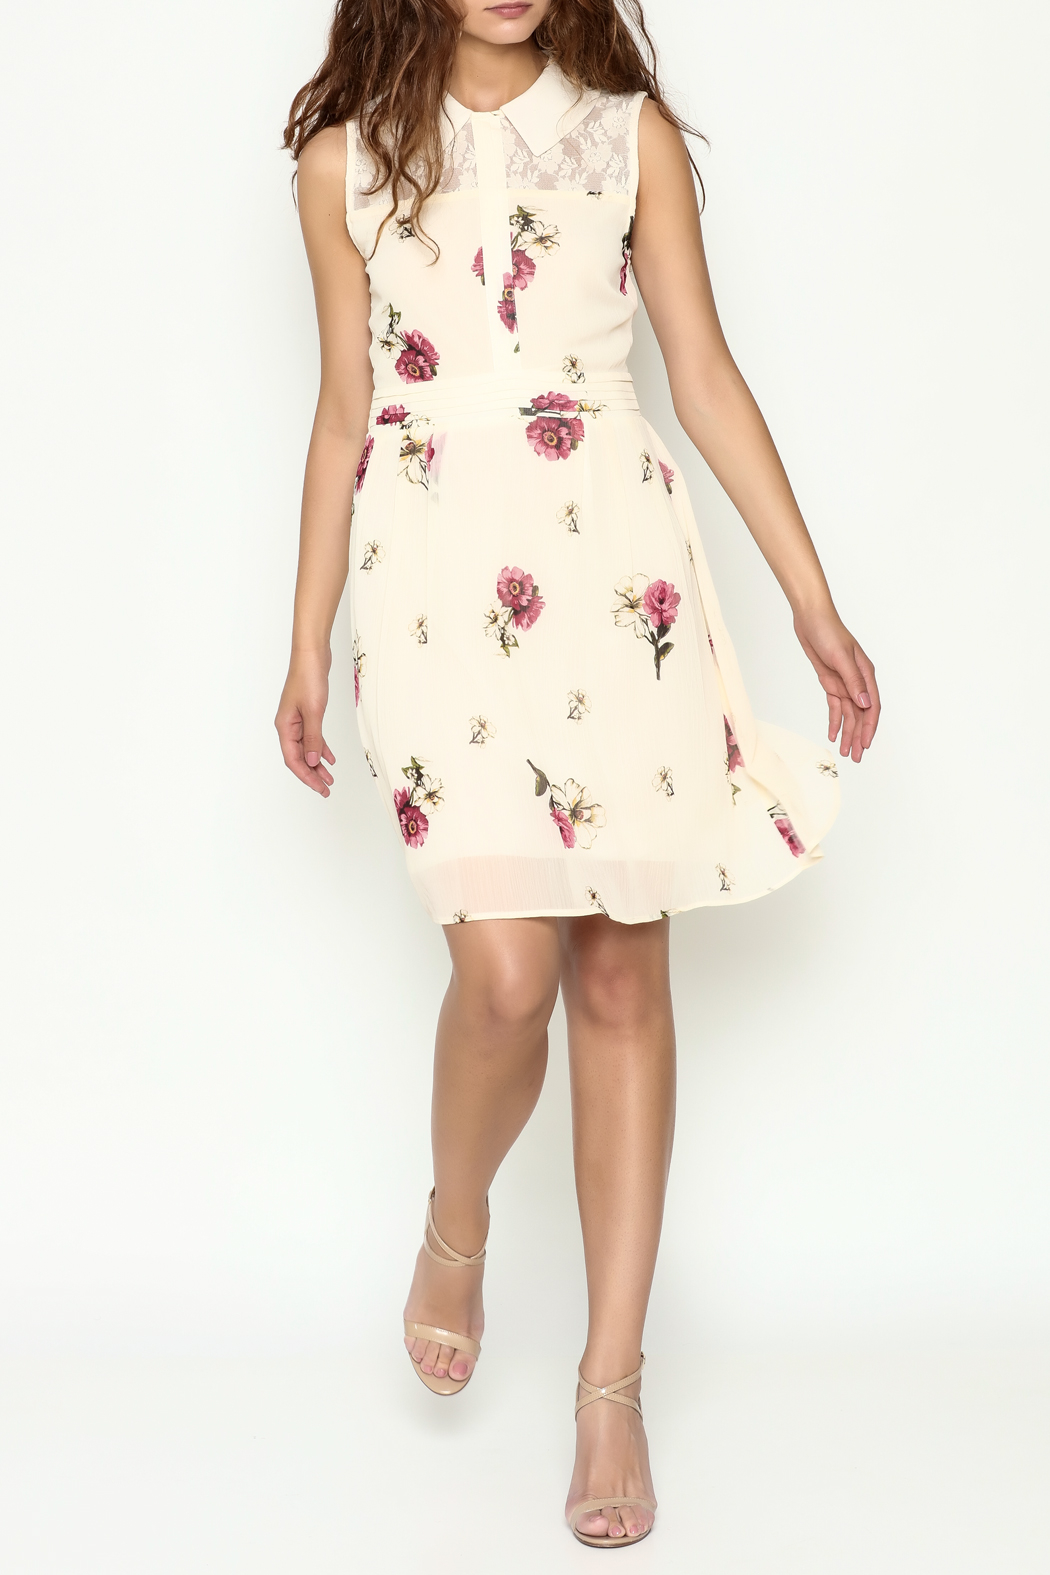 Marvy Fashion Floral Print Dress - Side Cropped Image